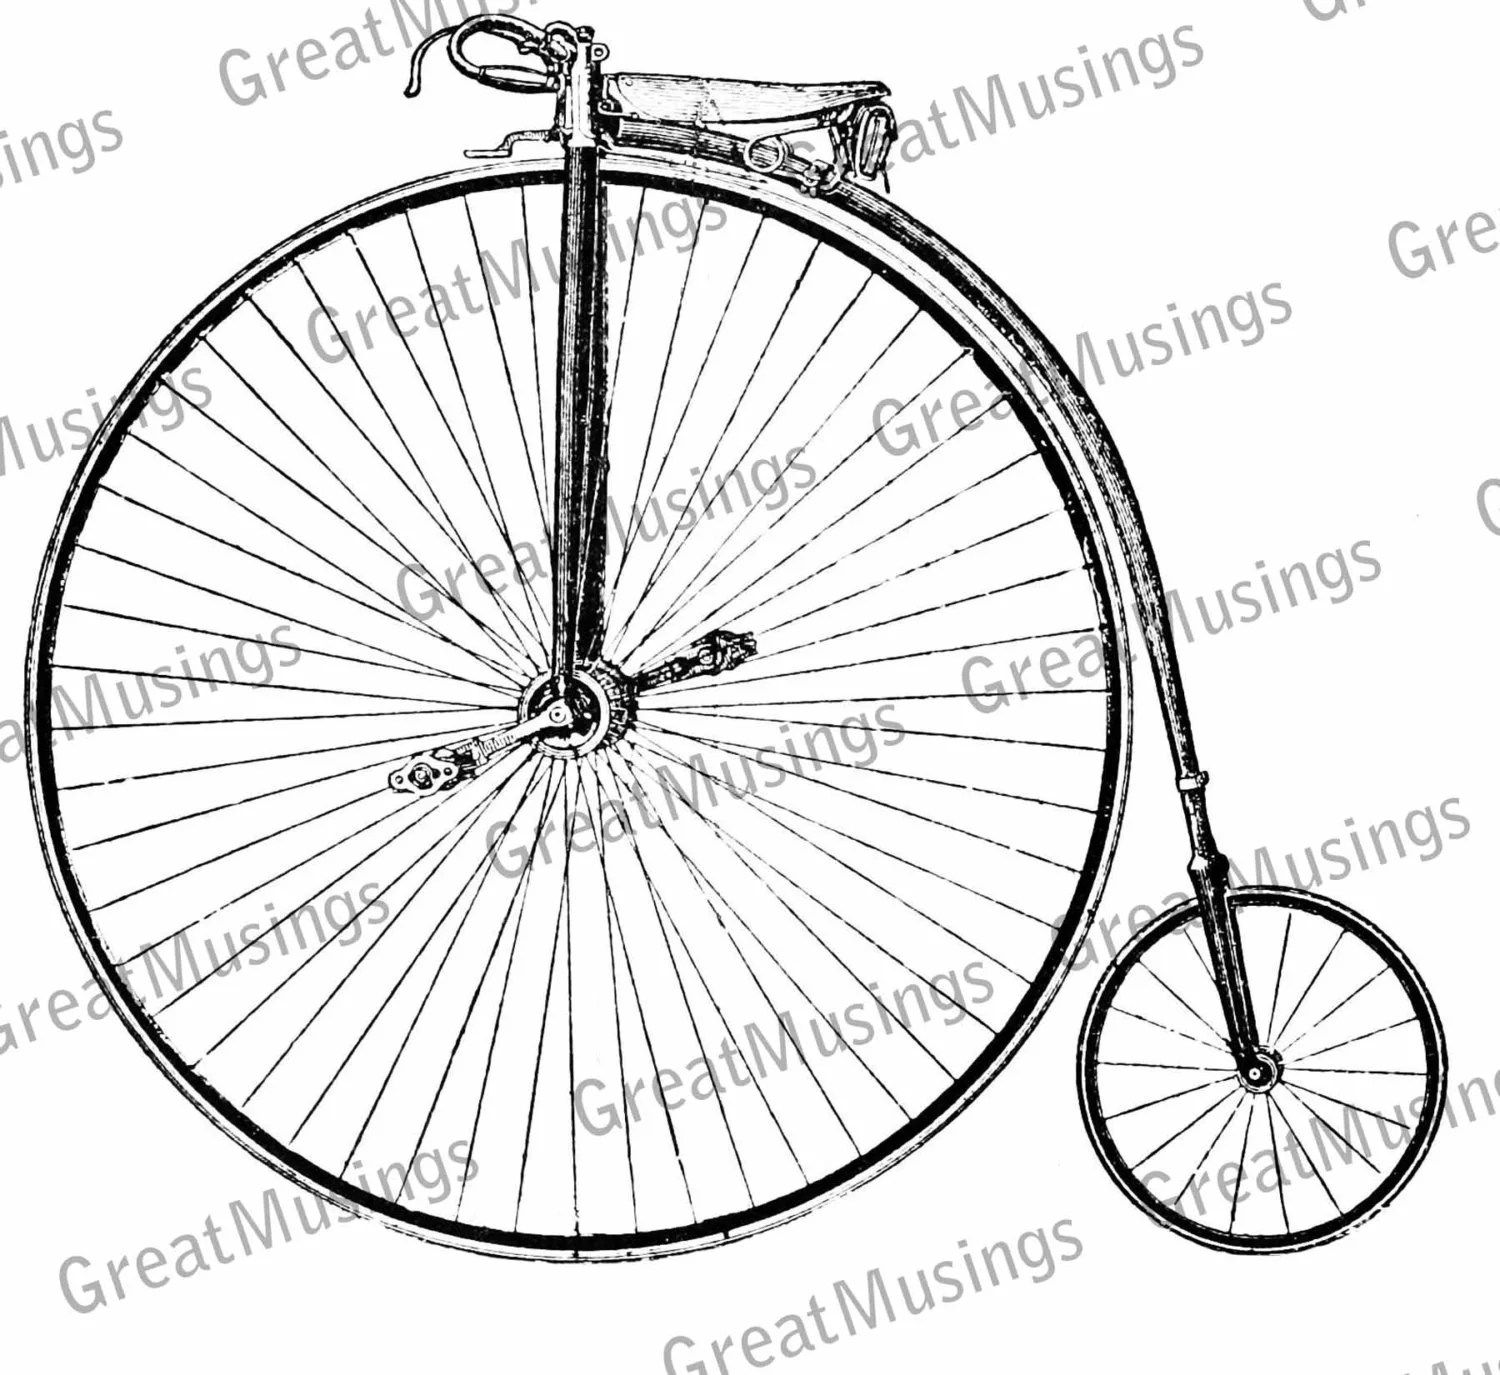 Vintage Penny Farthing Bicycle bike image black and white